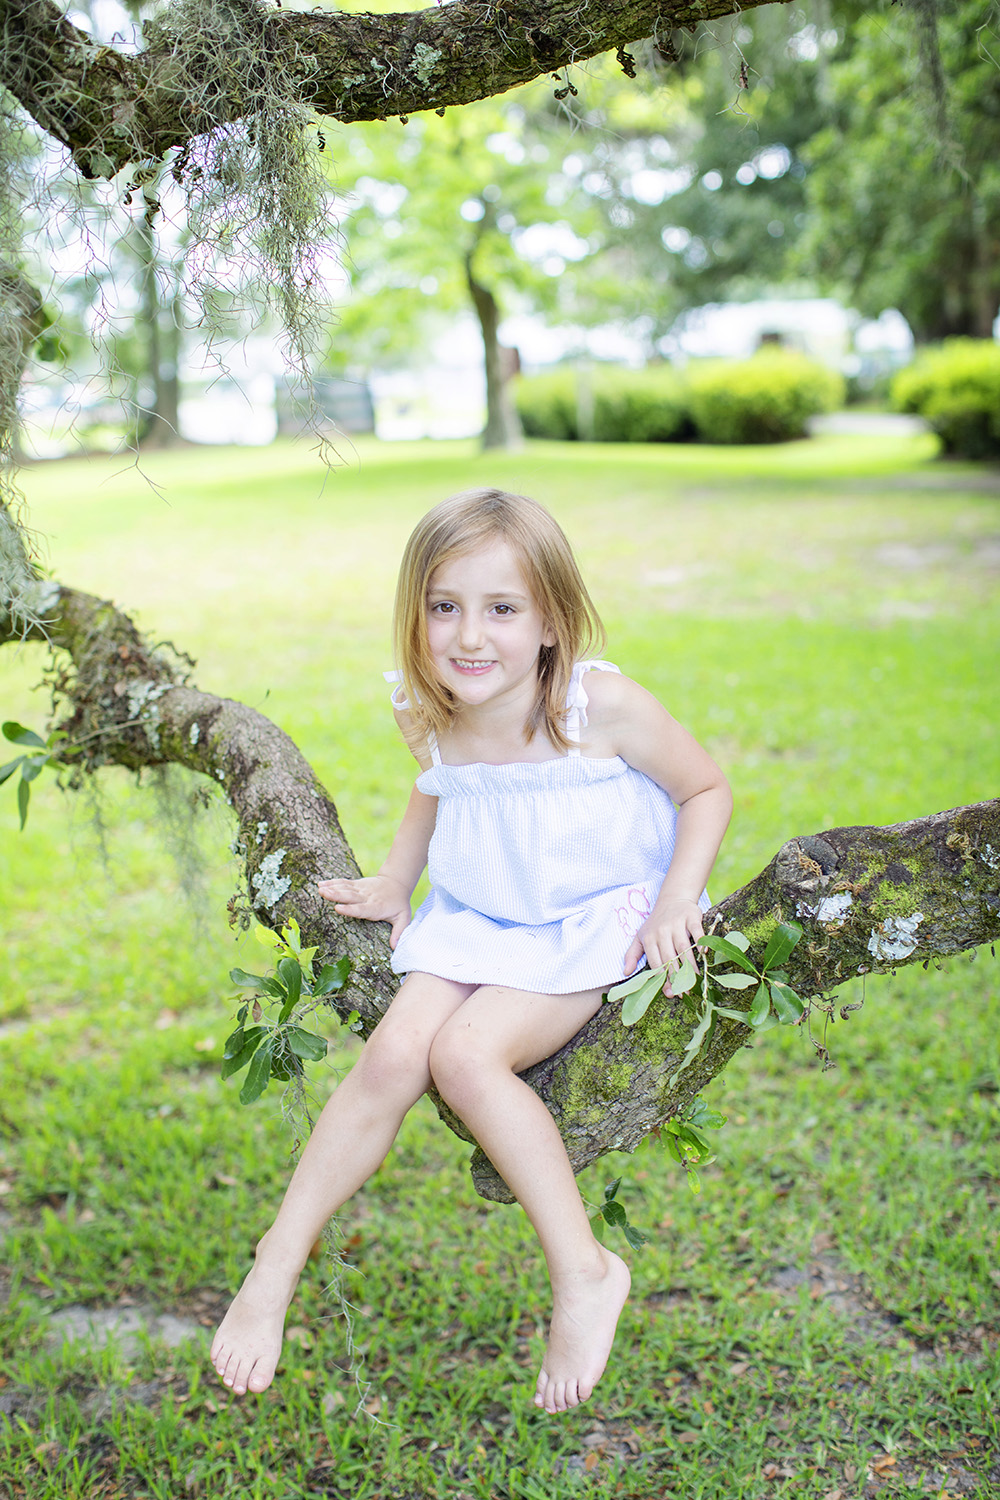 Swetman-Photography-Girl-In-A-Tree.jpg